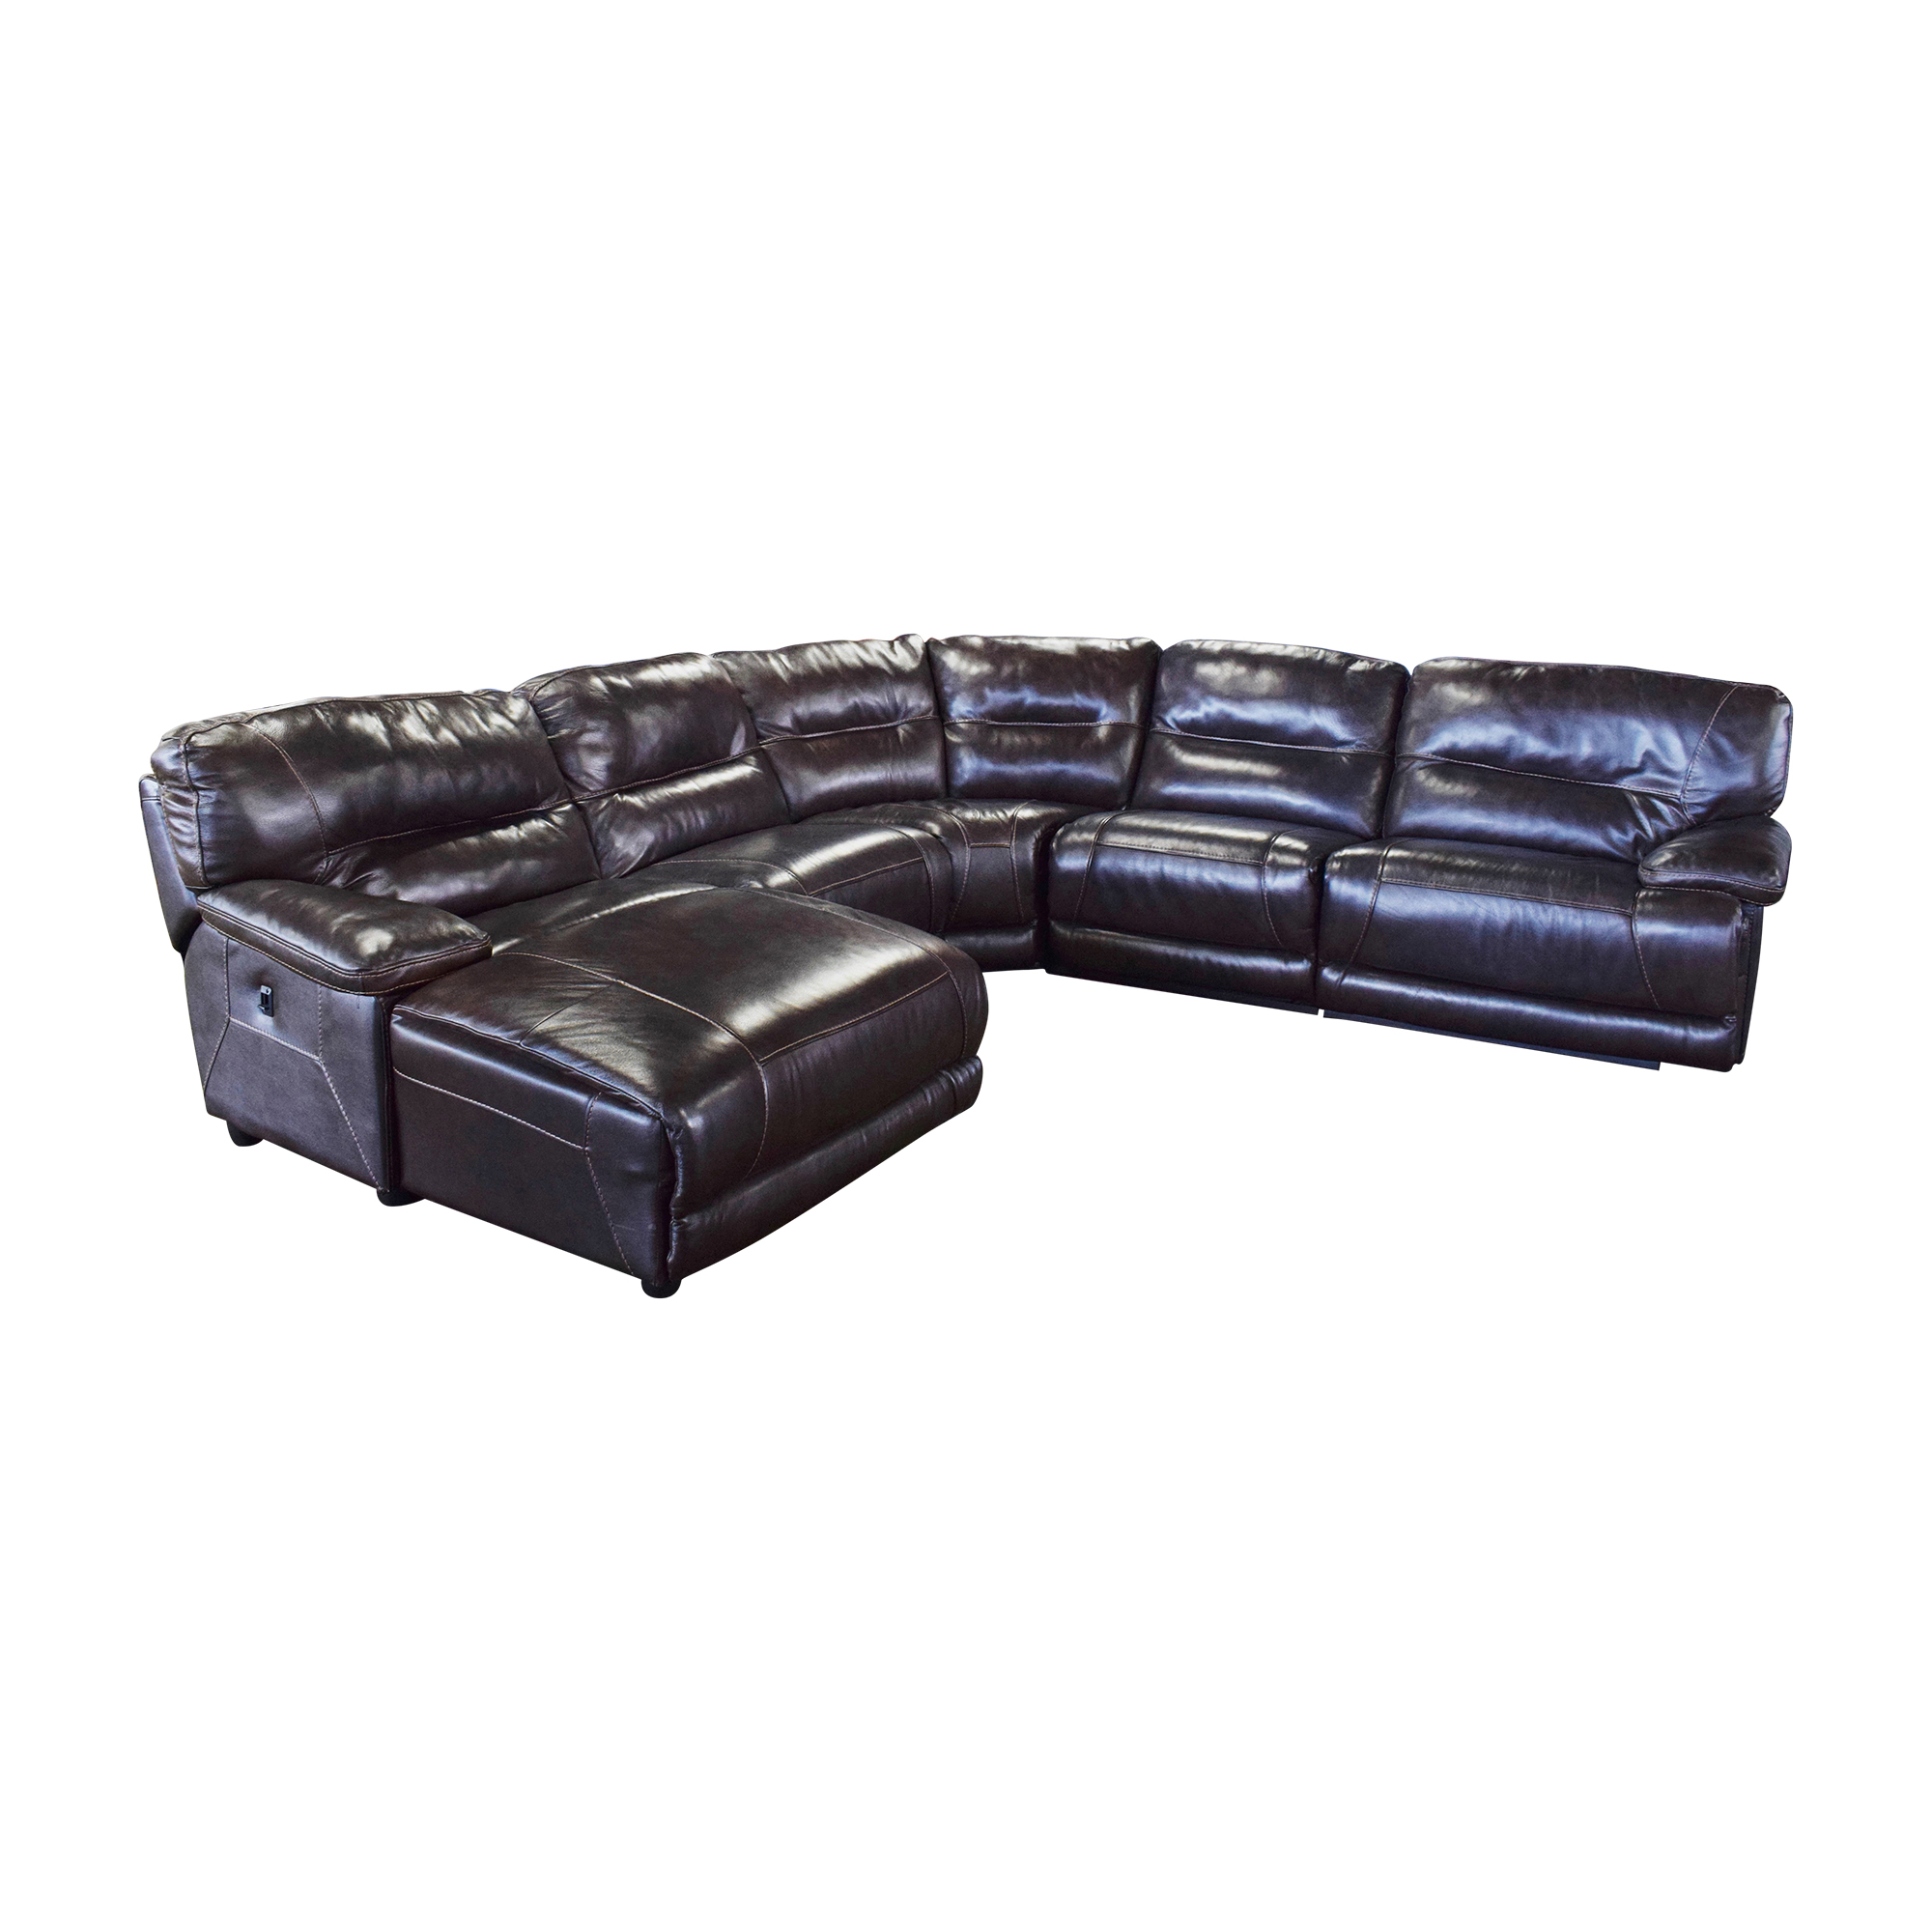 Curved Reclining Sectional Sofa